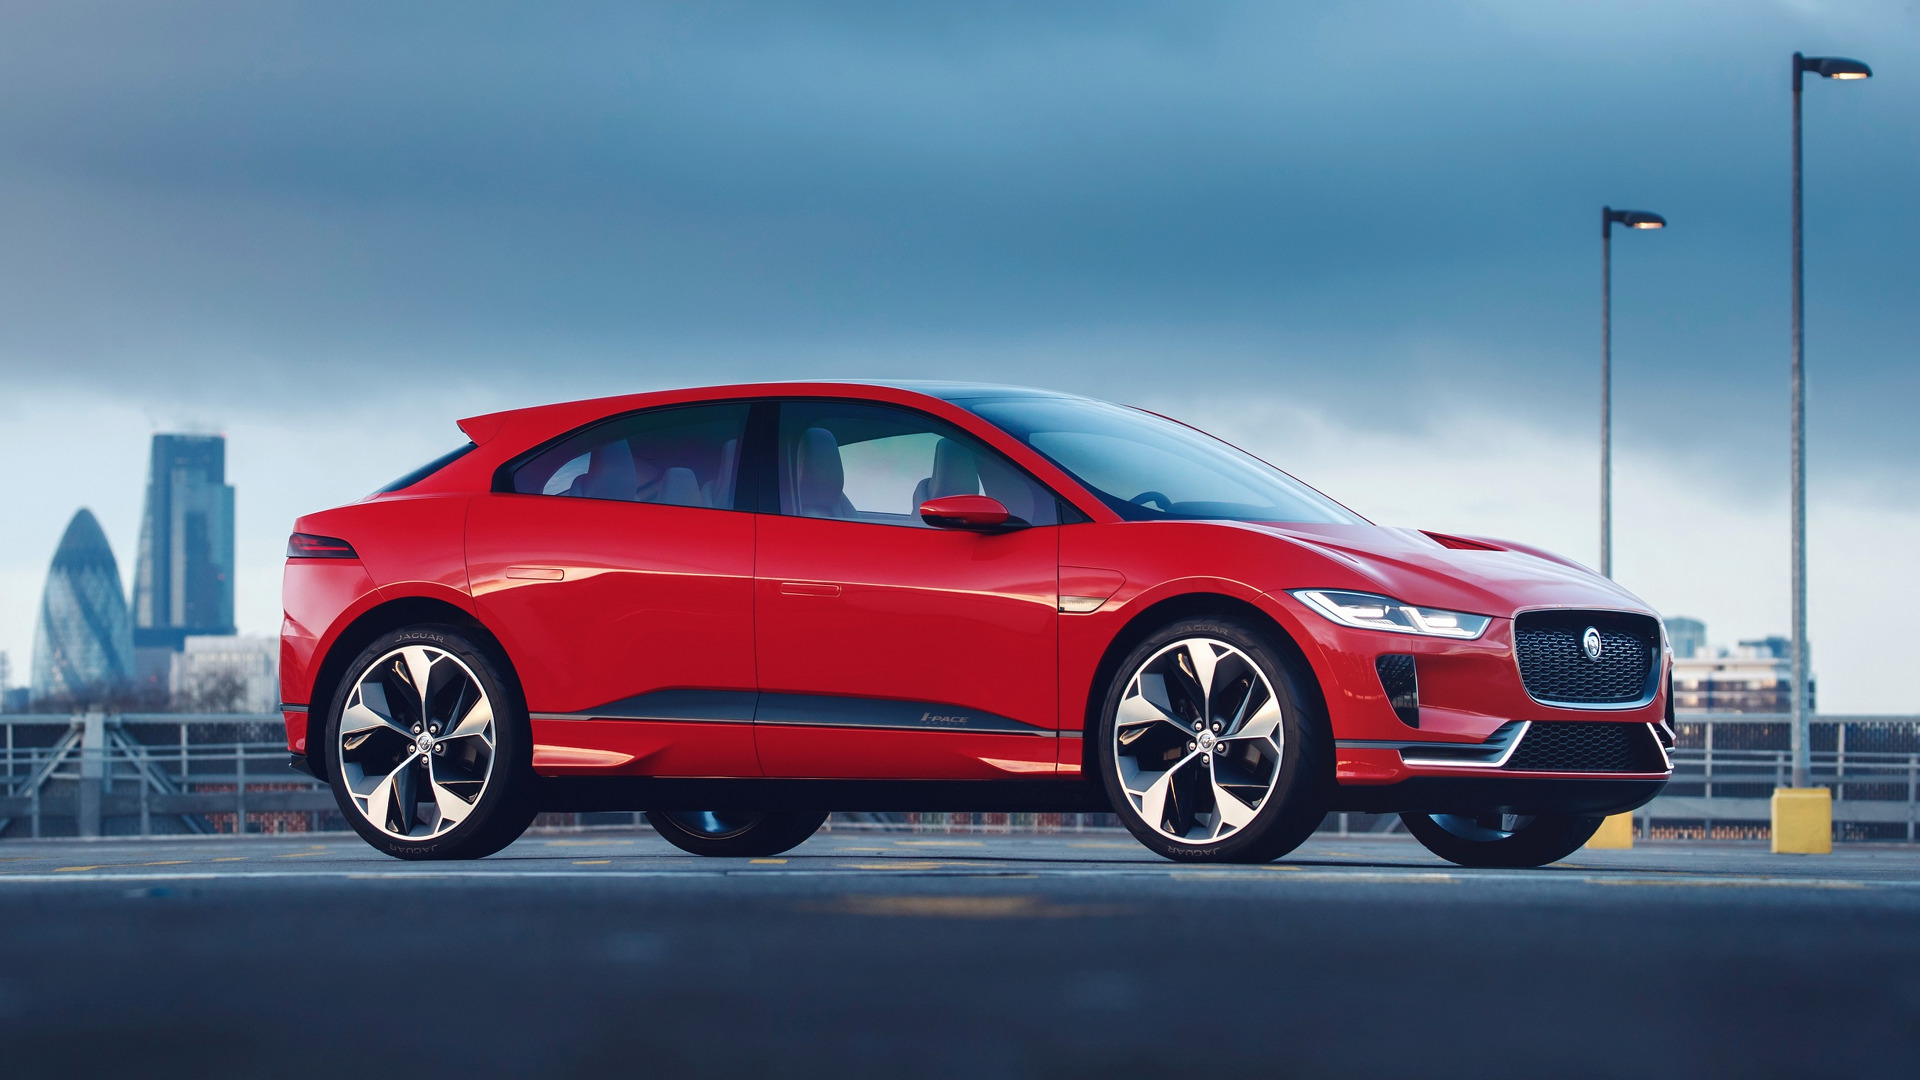 British Sports Cars For Sale In Usa >> Jaguar I-Pace Concept dresses in red for European debut